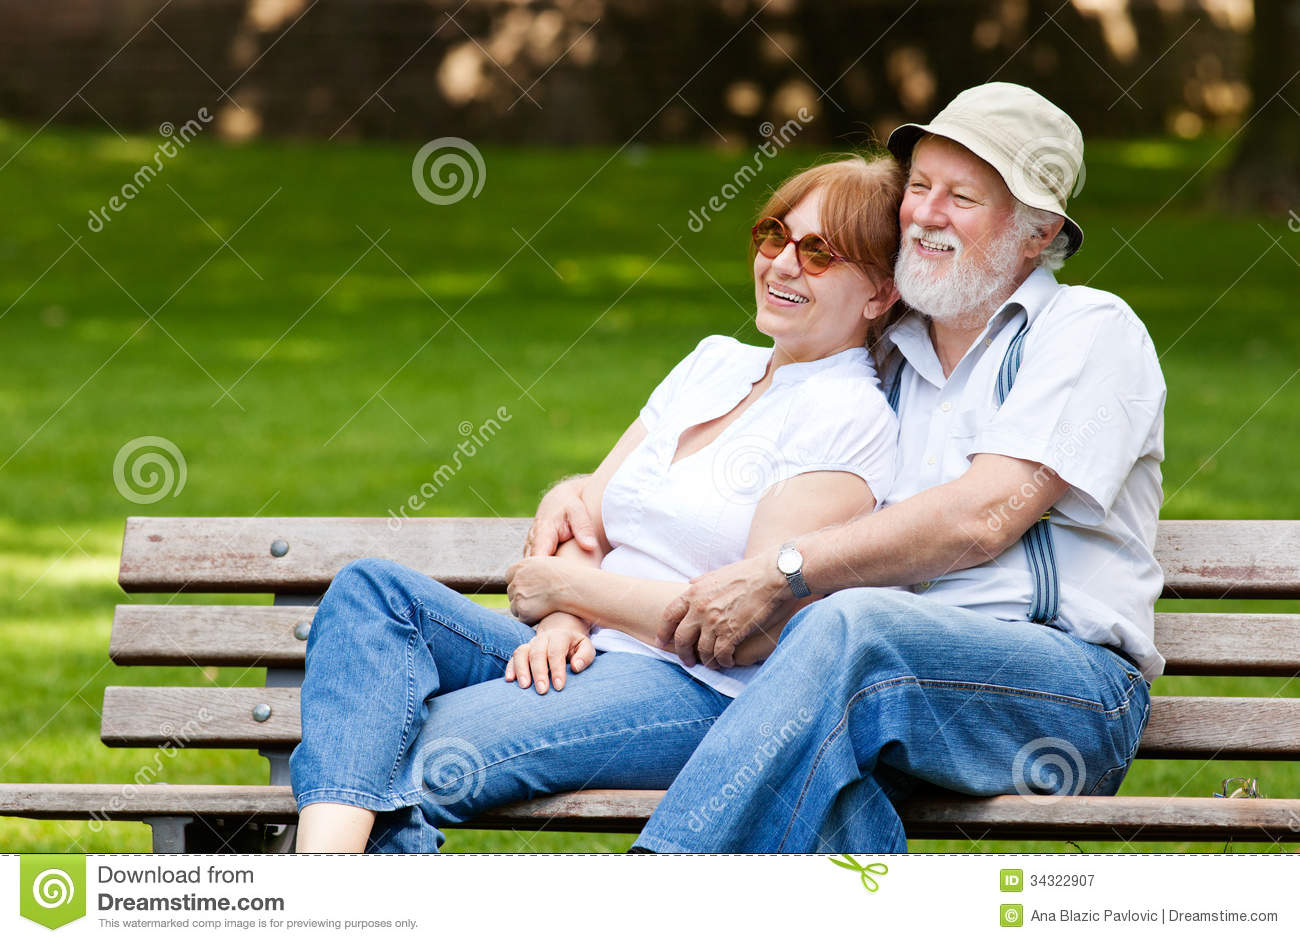 senior passions online dating You are welcome to use polyamorous passions solely as a dating site, since it has all the major features found on mainstream dating sites (eg photo personals.